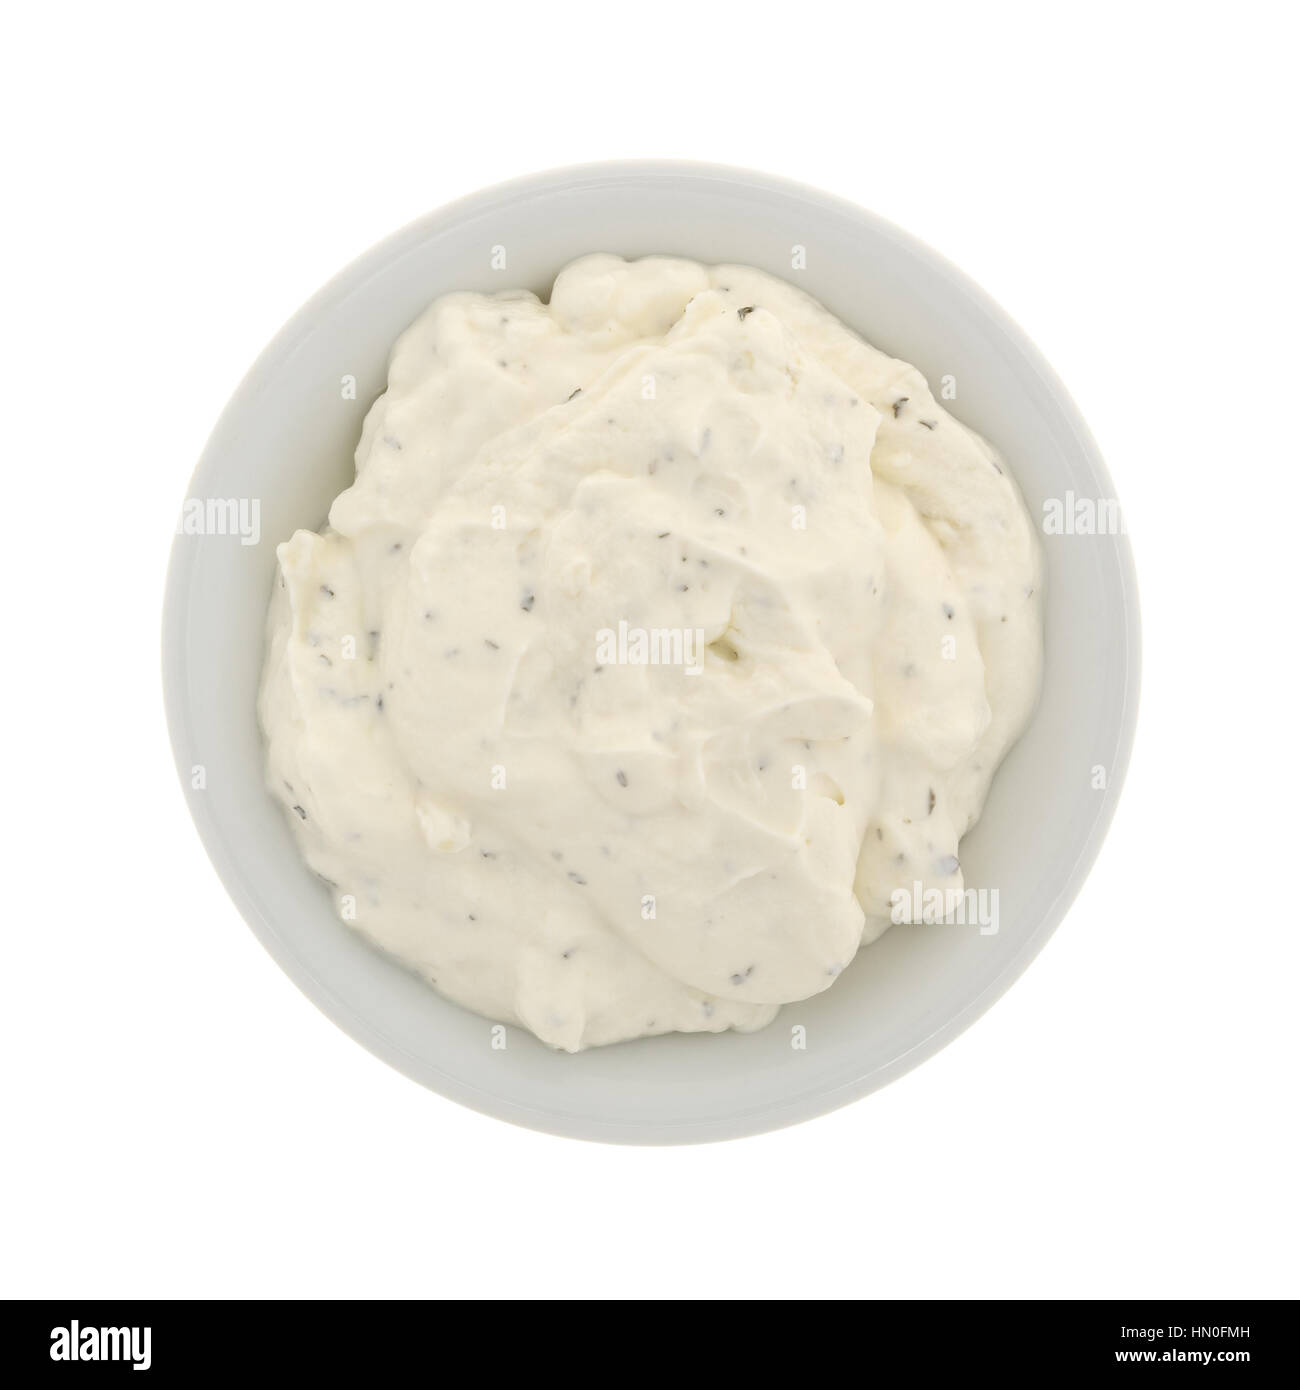 Top view of  a small bowl filled with fresh French onion dip isolated on a white background. - Stock Image